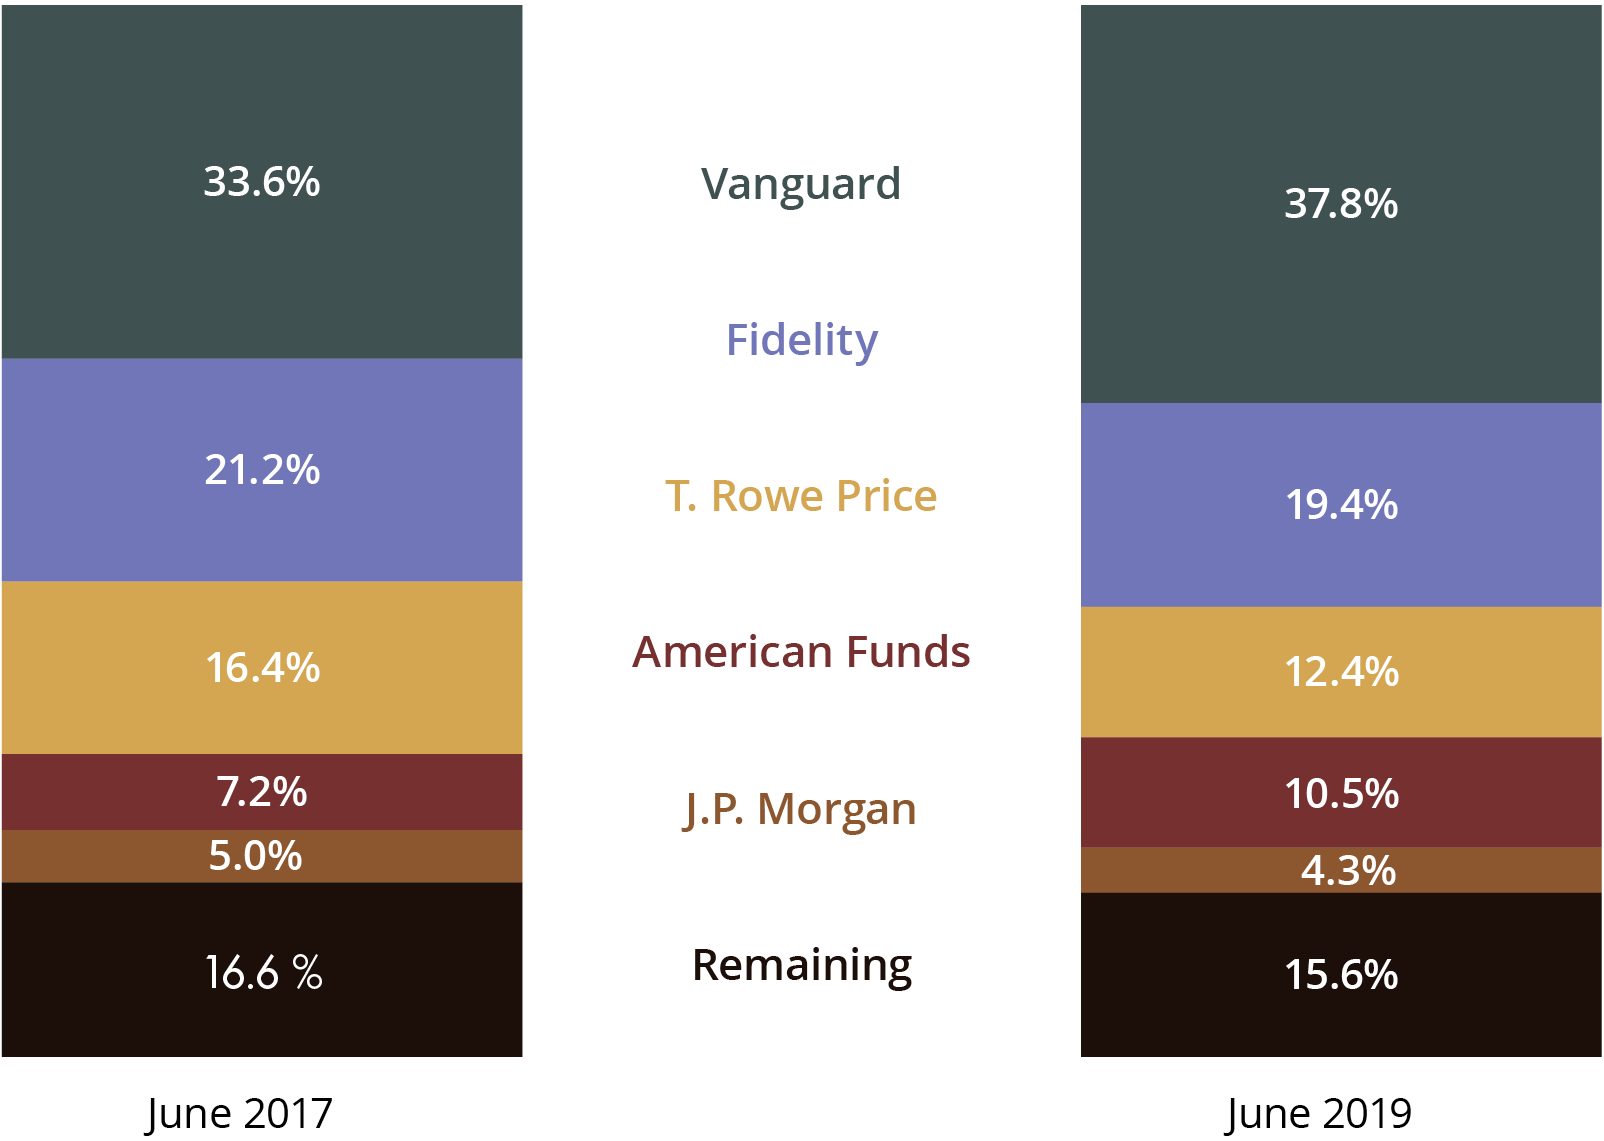 Market Share of Top 5 vs. Remaining Target-Date Mutual Funds